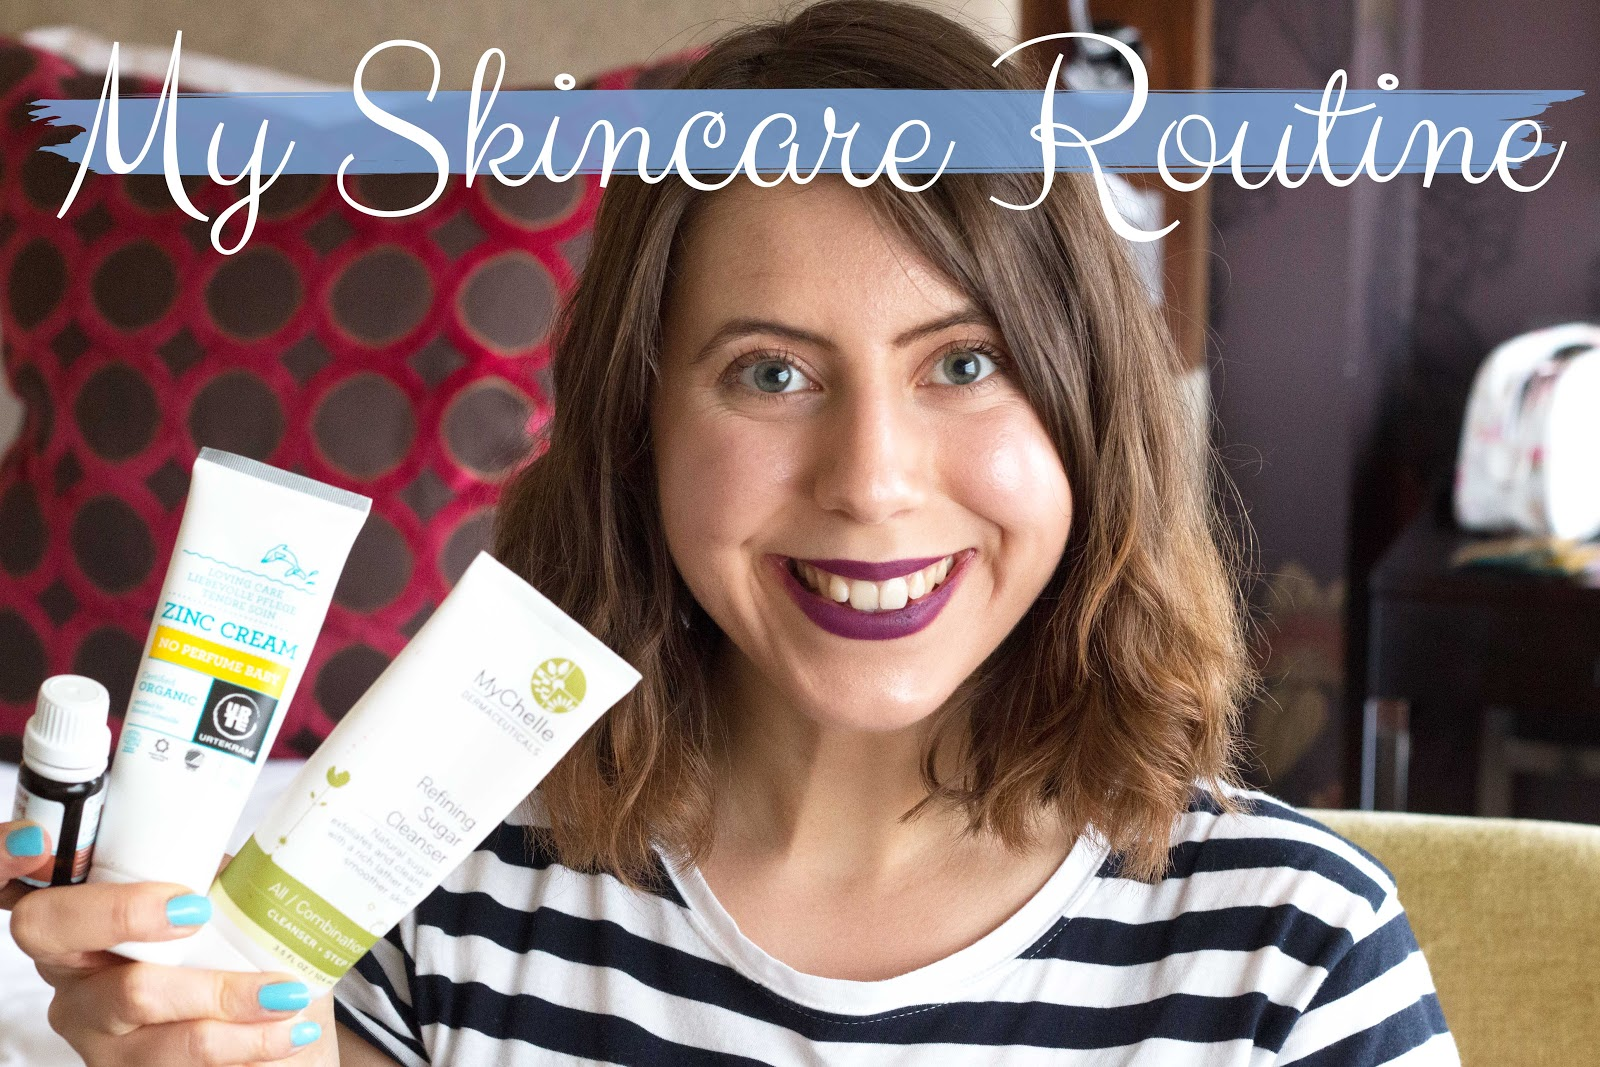 THE VIDEO: MY SKINCARE ROUTINE